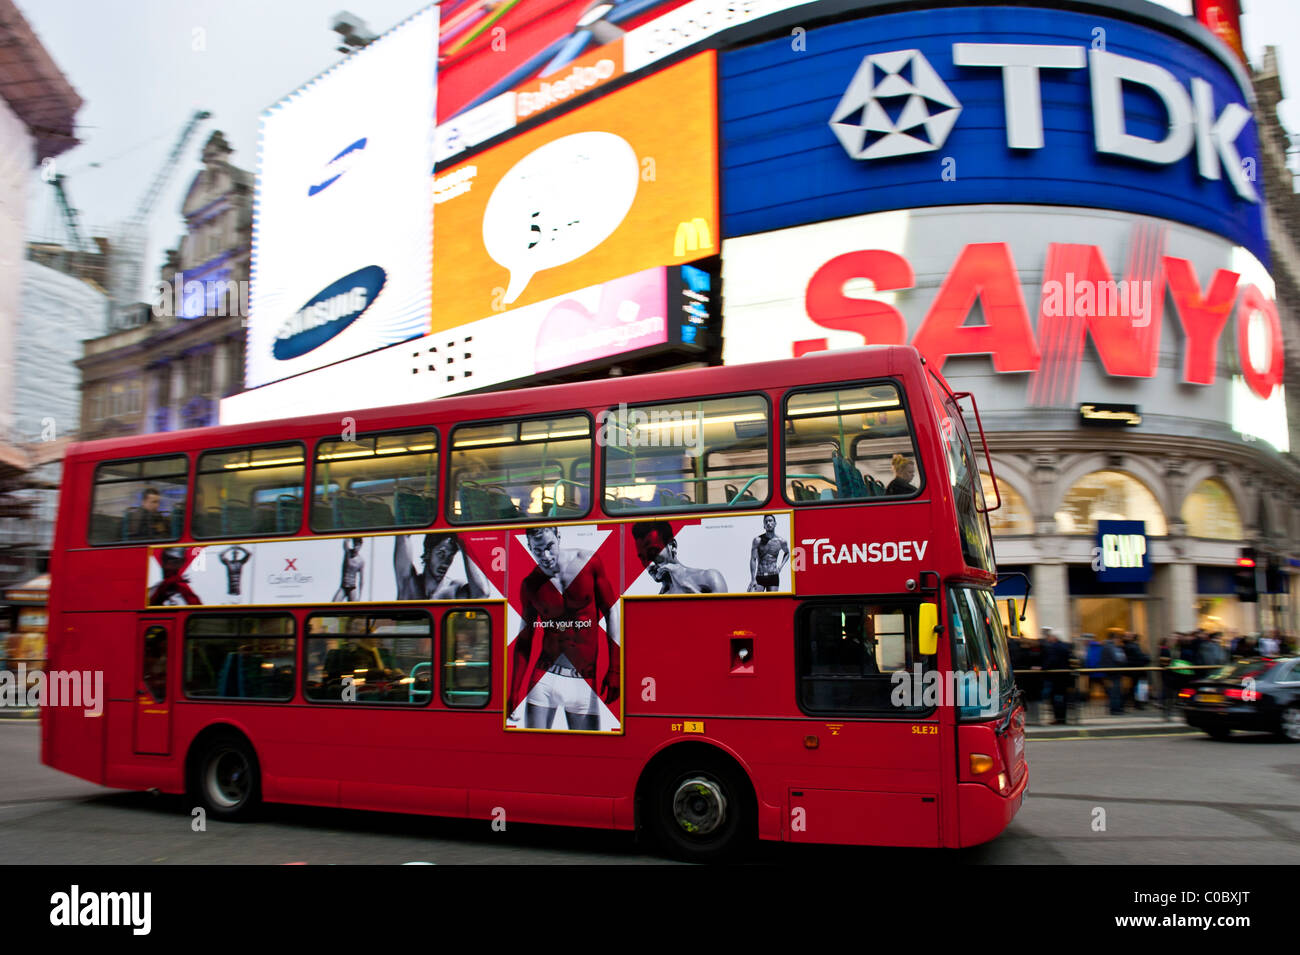 double decker red bus in front of the advertisings of Piccadilly circus, London, England, UK - Stock Image